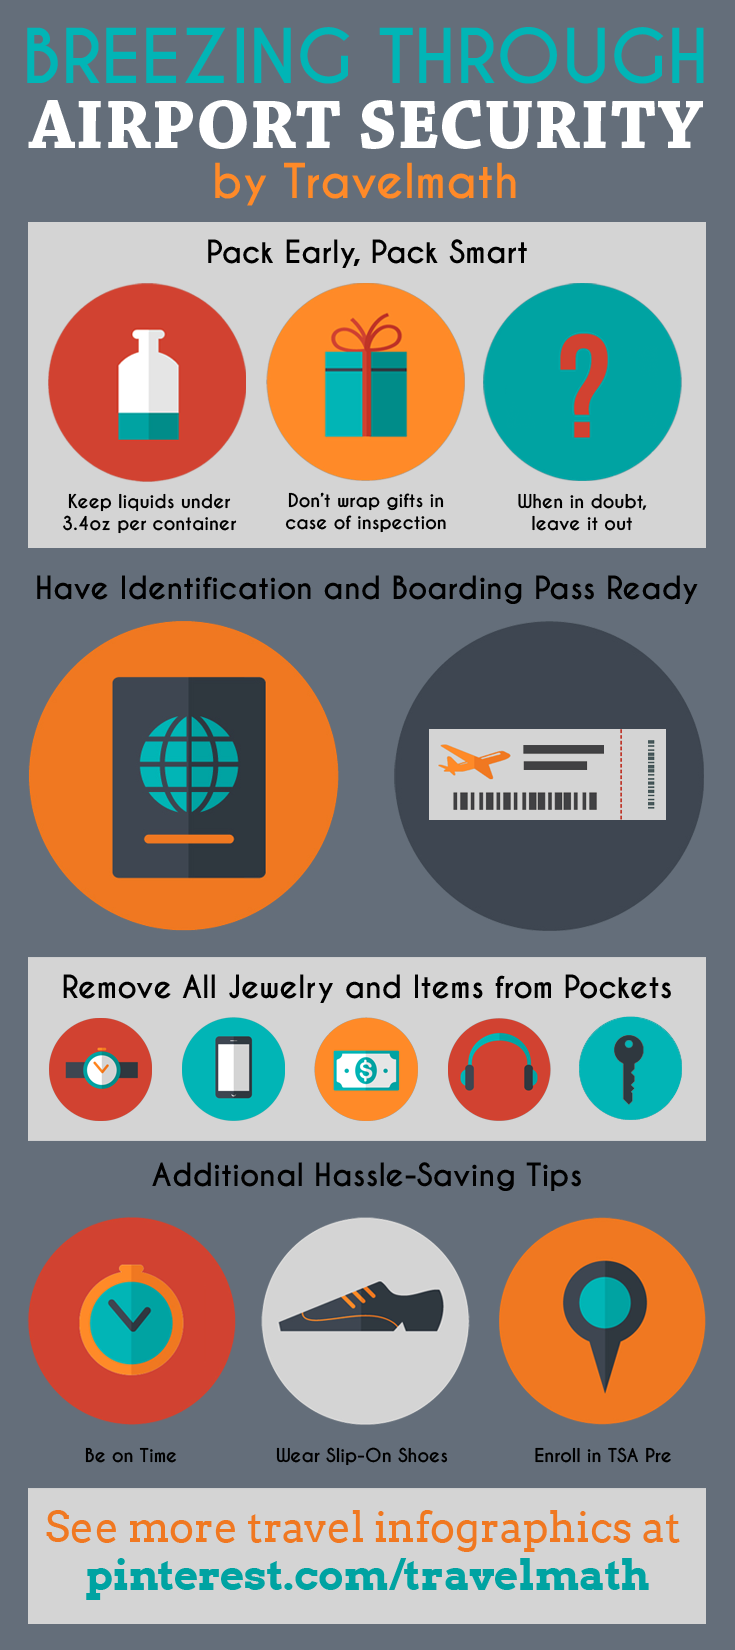 Breezing Through Airport Security [INFOGRAPHIC] travel